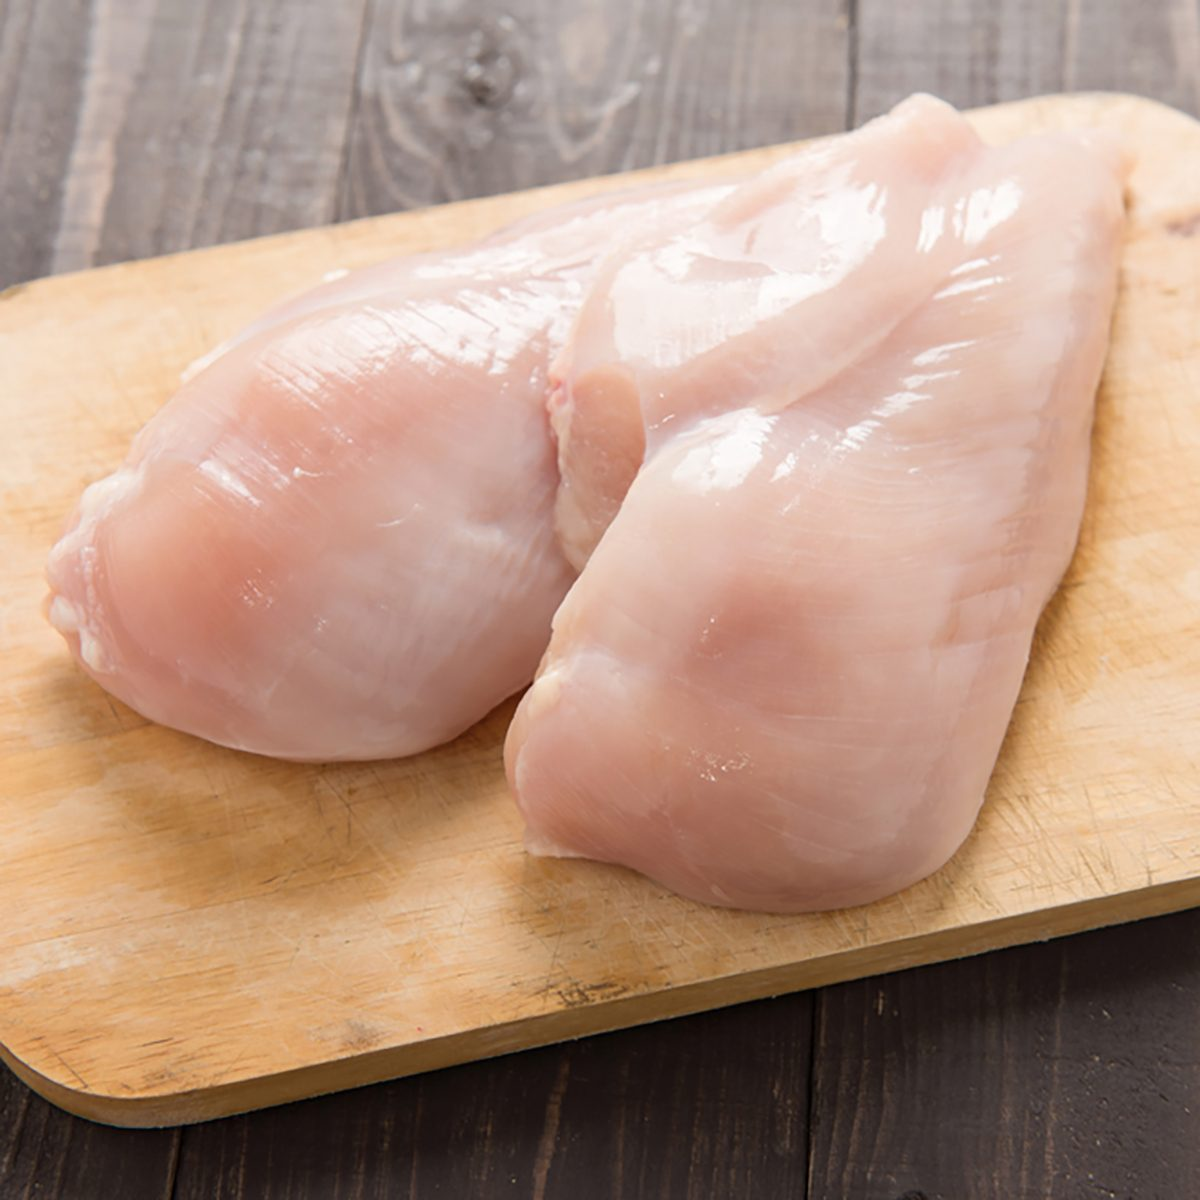 Raw chicken breast fillets on wooden background